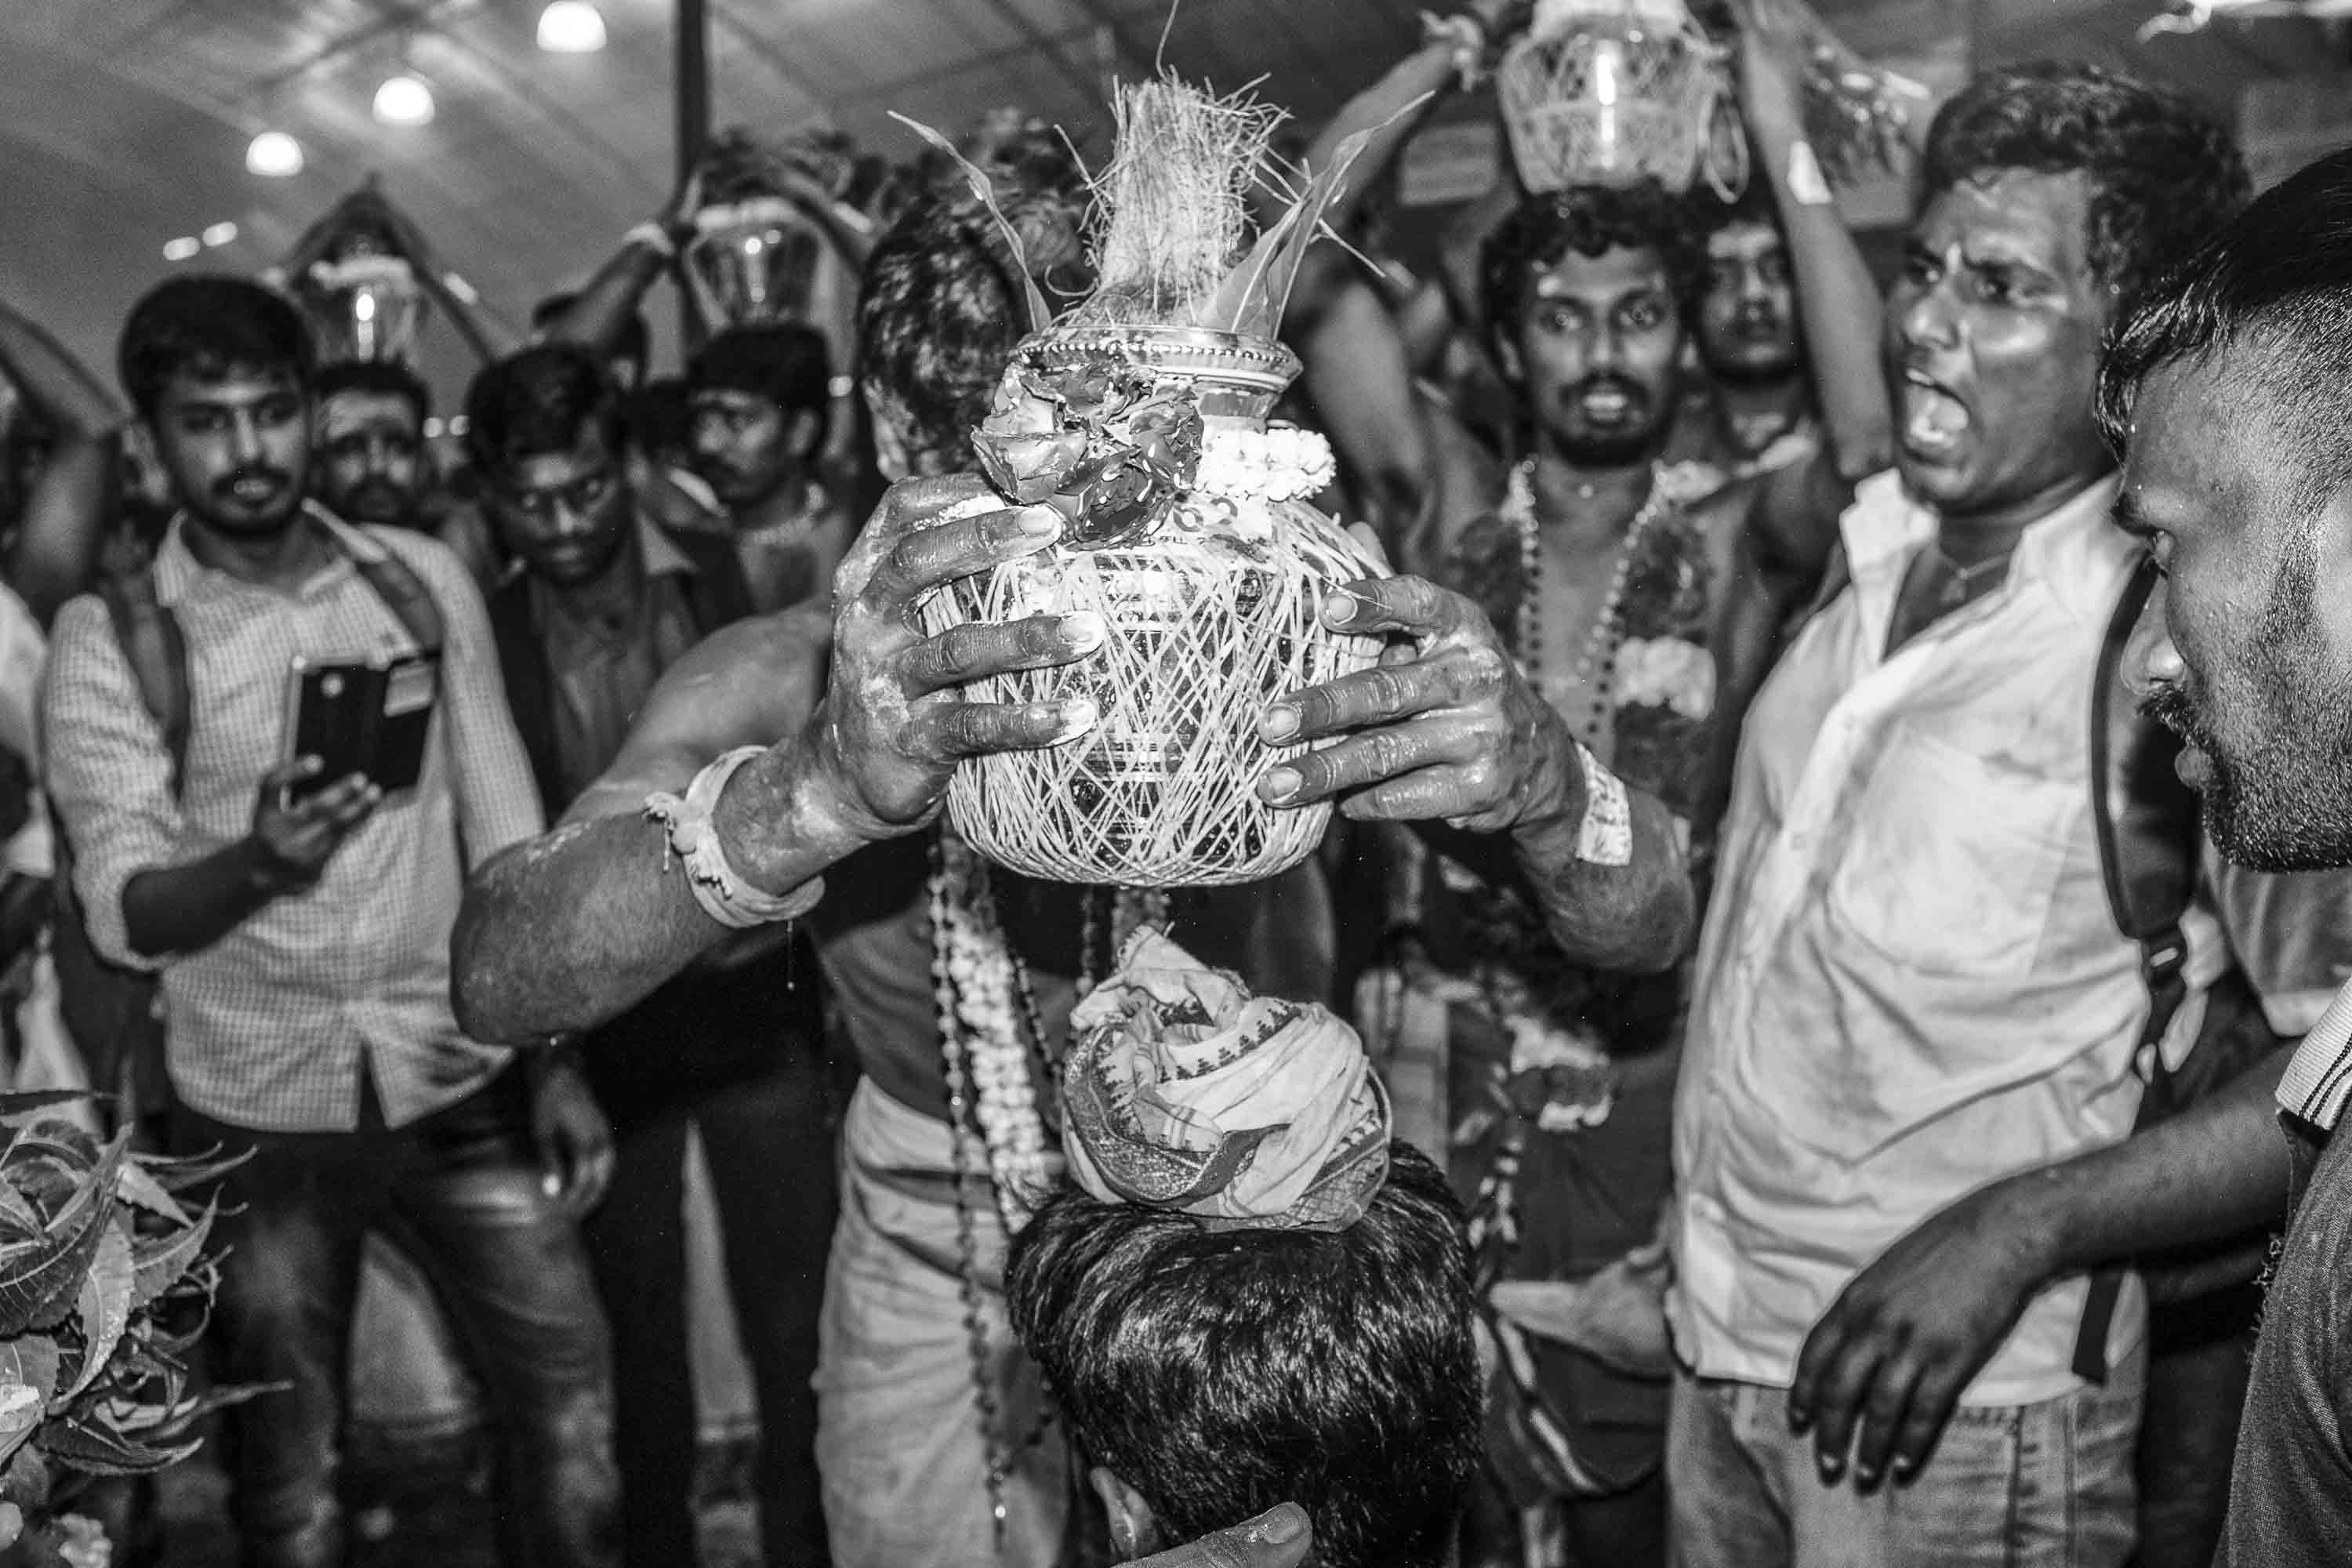 coco nuts ceremony Little India Thaipusam Festival hindu Singapore photography jose jeuland documentary event